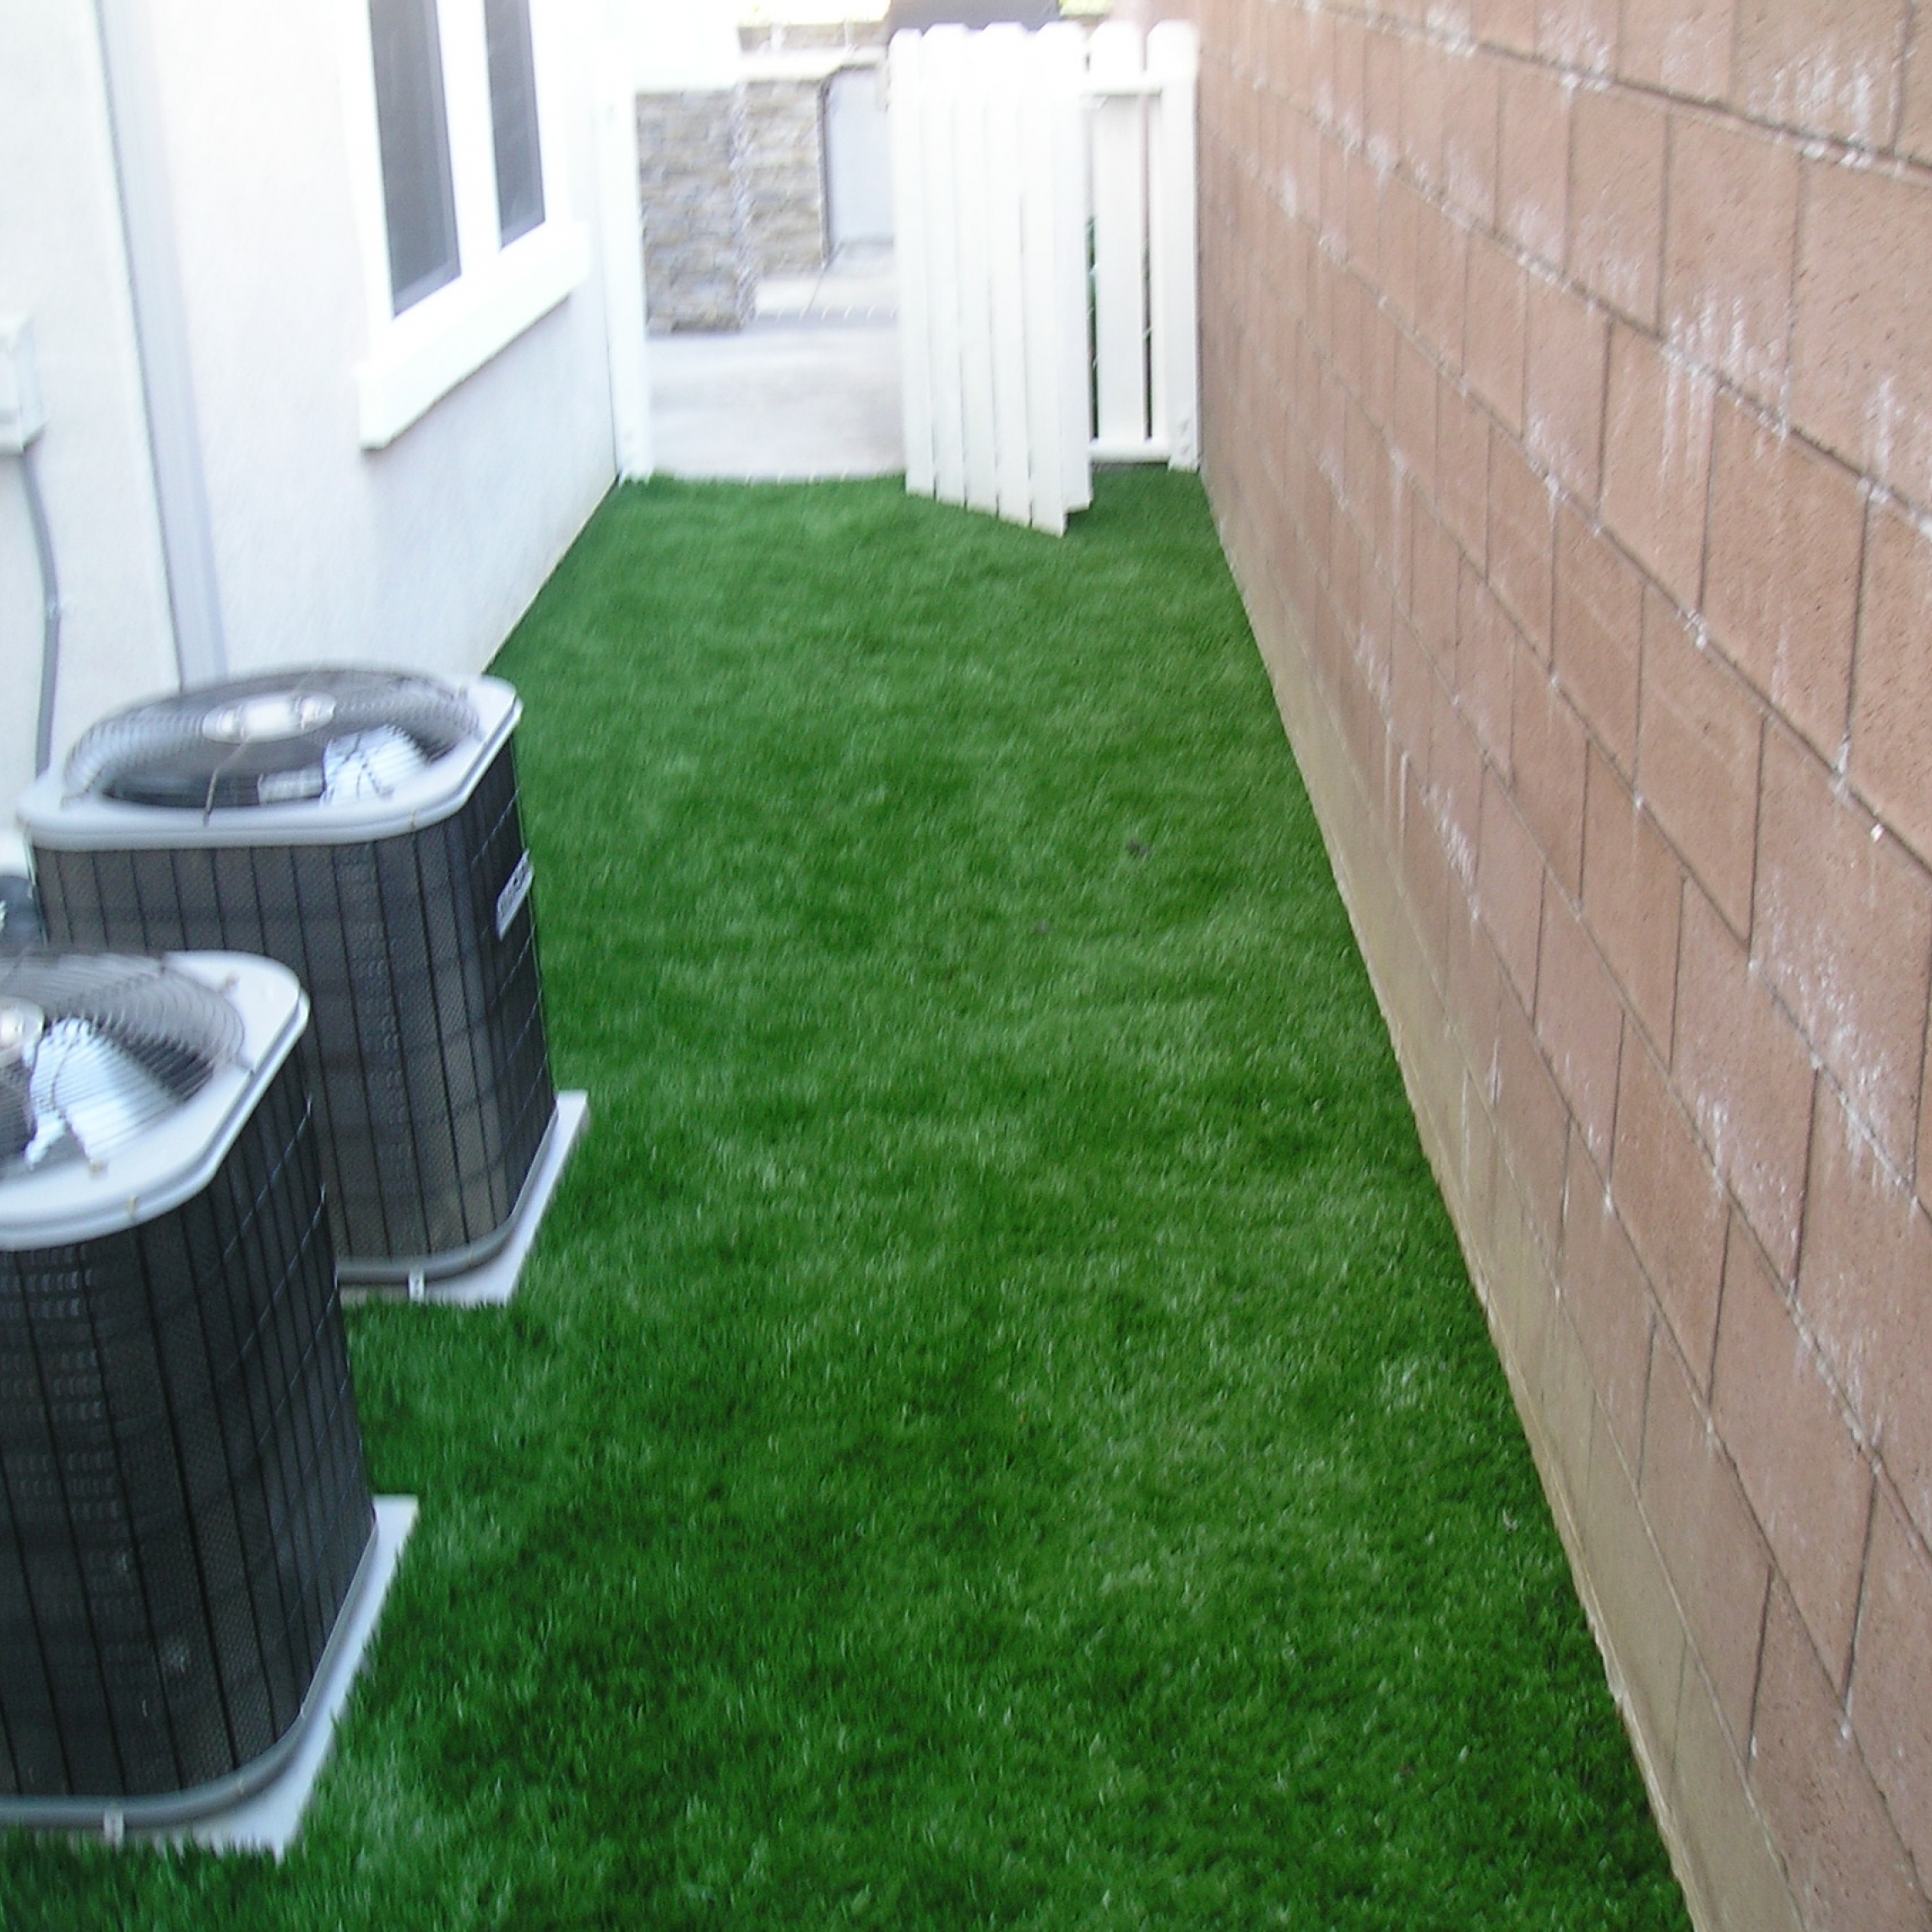 Riviera Monterey-50 residential landscaping,artificial turf residential,residential landscape,residential turf,residential artificial grass,fake grass for yard,backyard turf,turf backyard,turf yard,fake grass for backyard